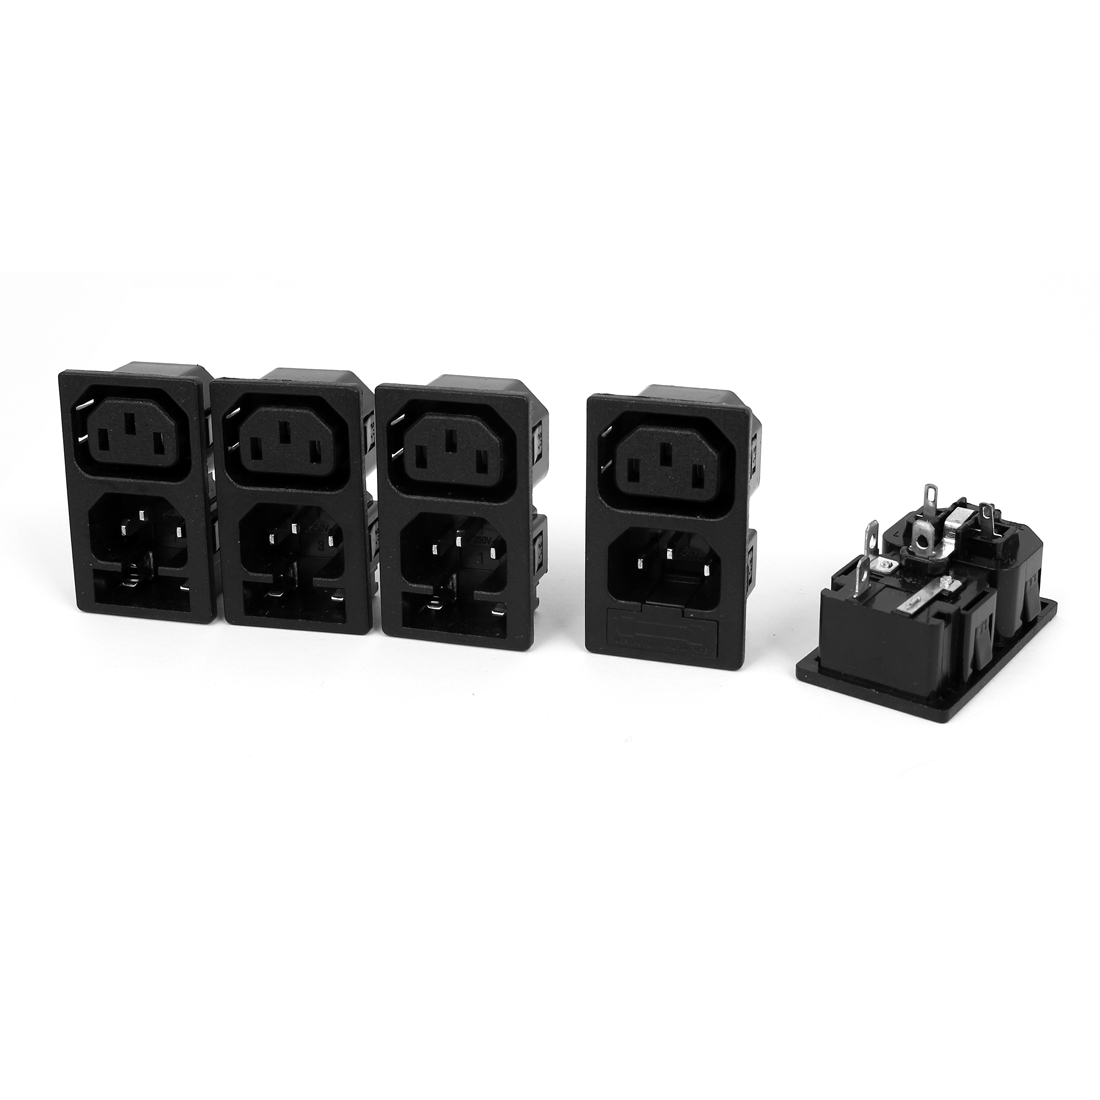 5 Pcs AC250V 10A WD-201 1 Male 1 Female Snap-In IEC Connector Power Socket